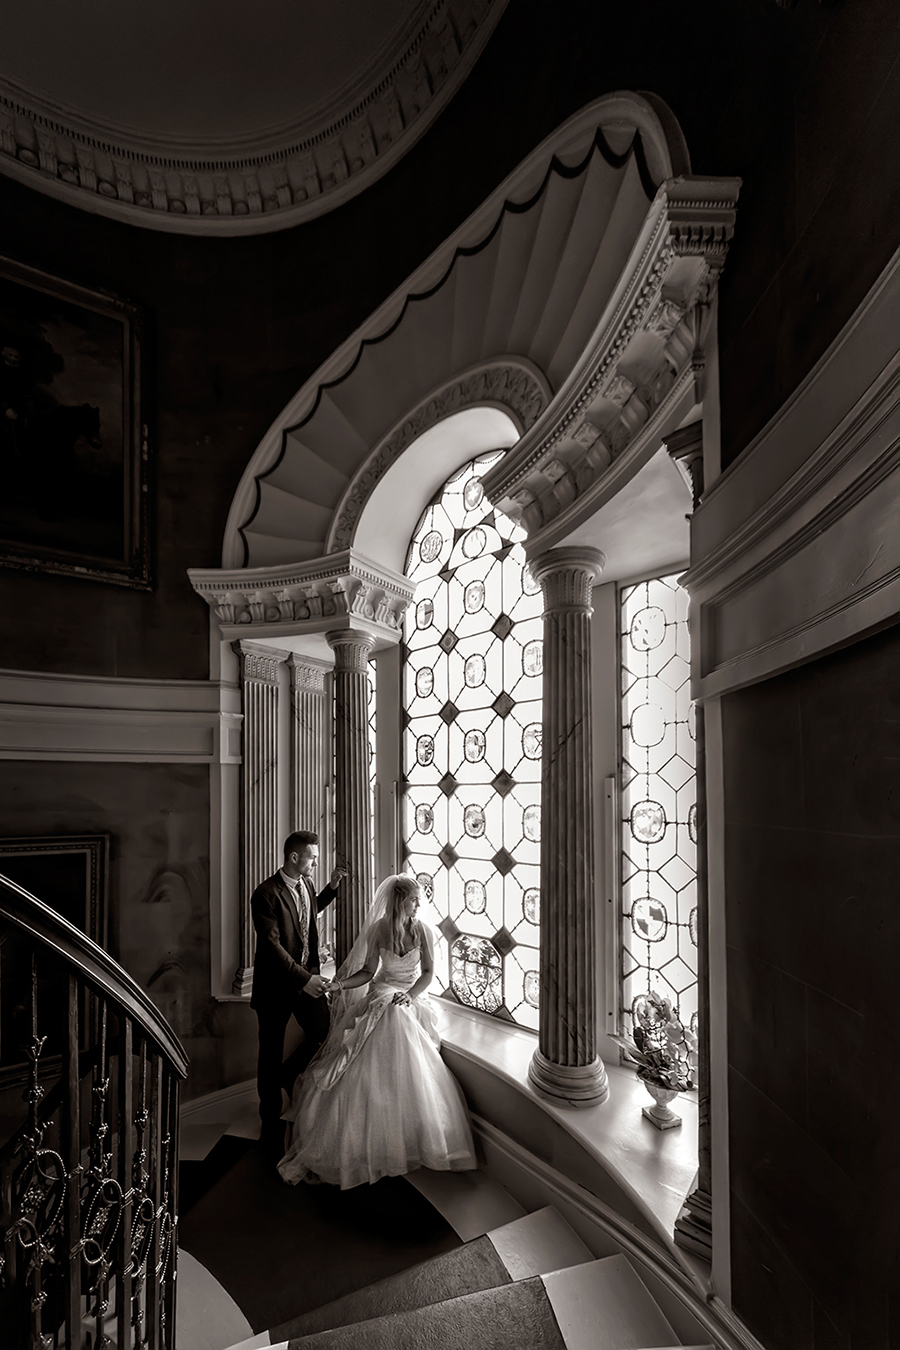 Wedding and Portrait Photography Workshop (5 Day)